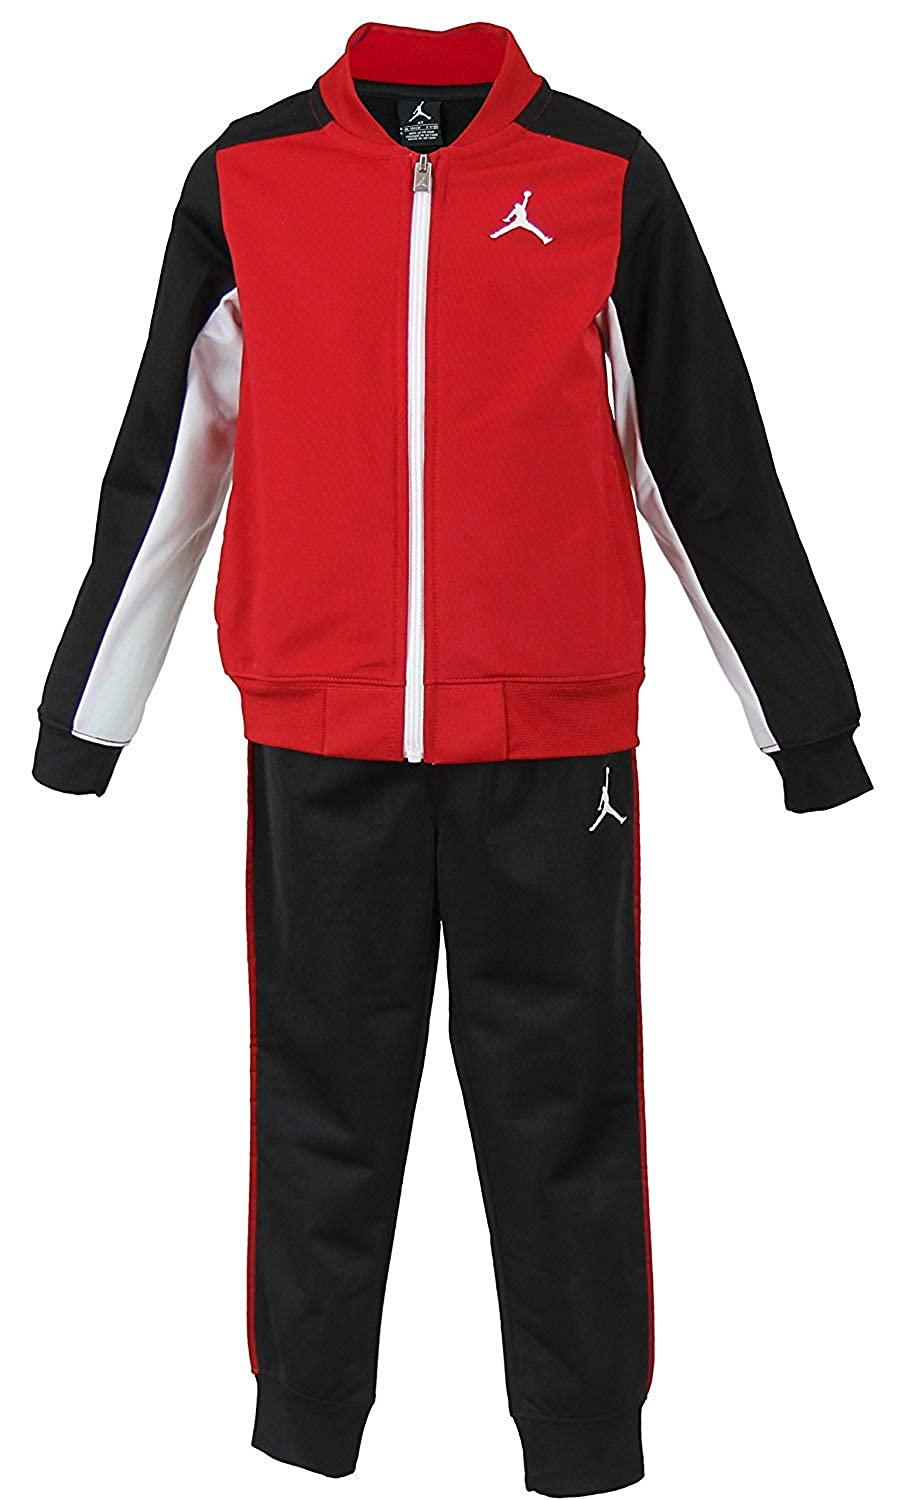 7d1f88d4caa Amazon.com  Nike Air Jordan Toddler Boys Tracksuit Jacket   Pants Set -  Black